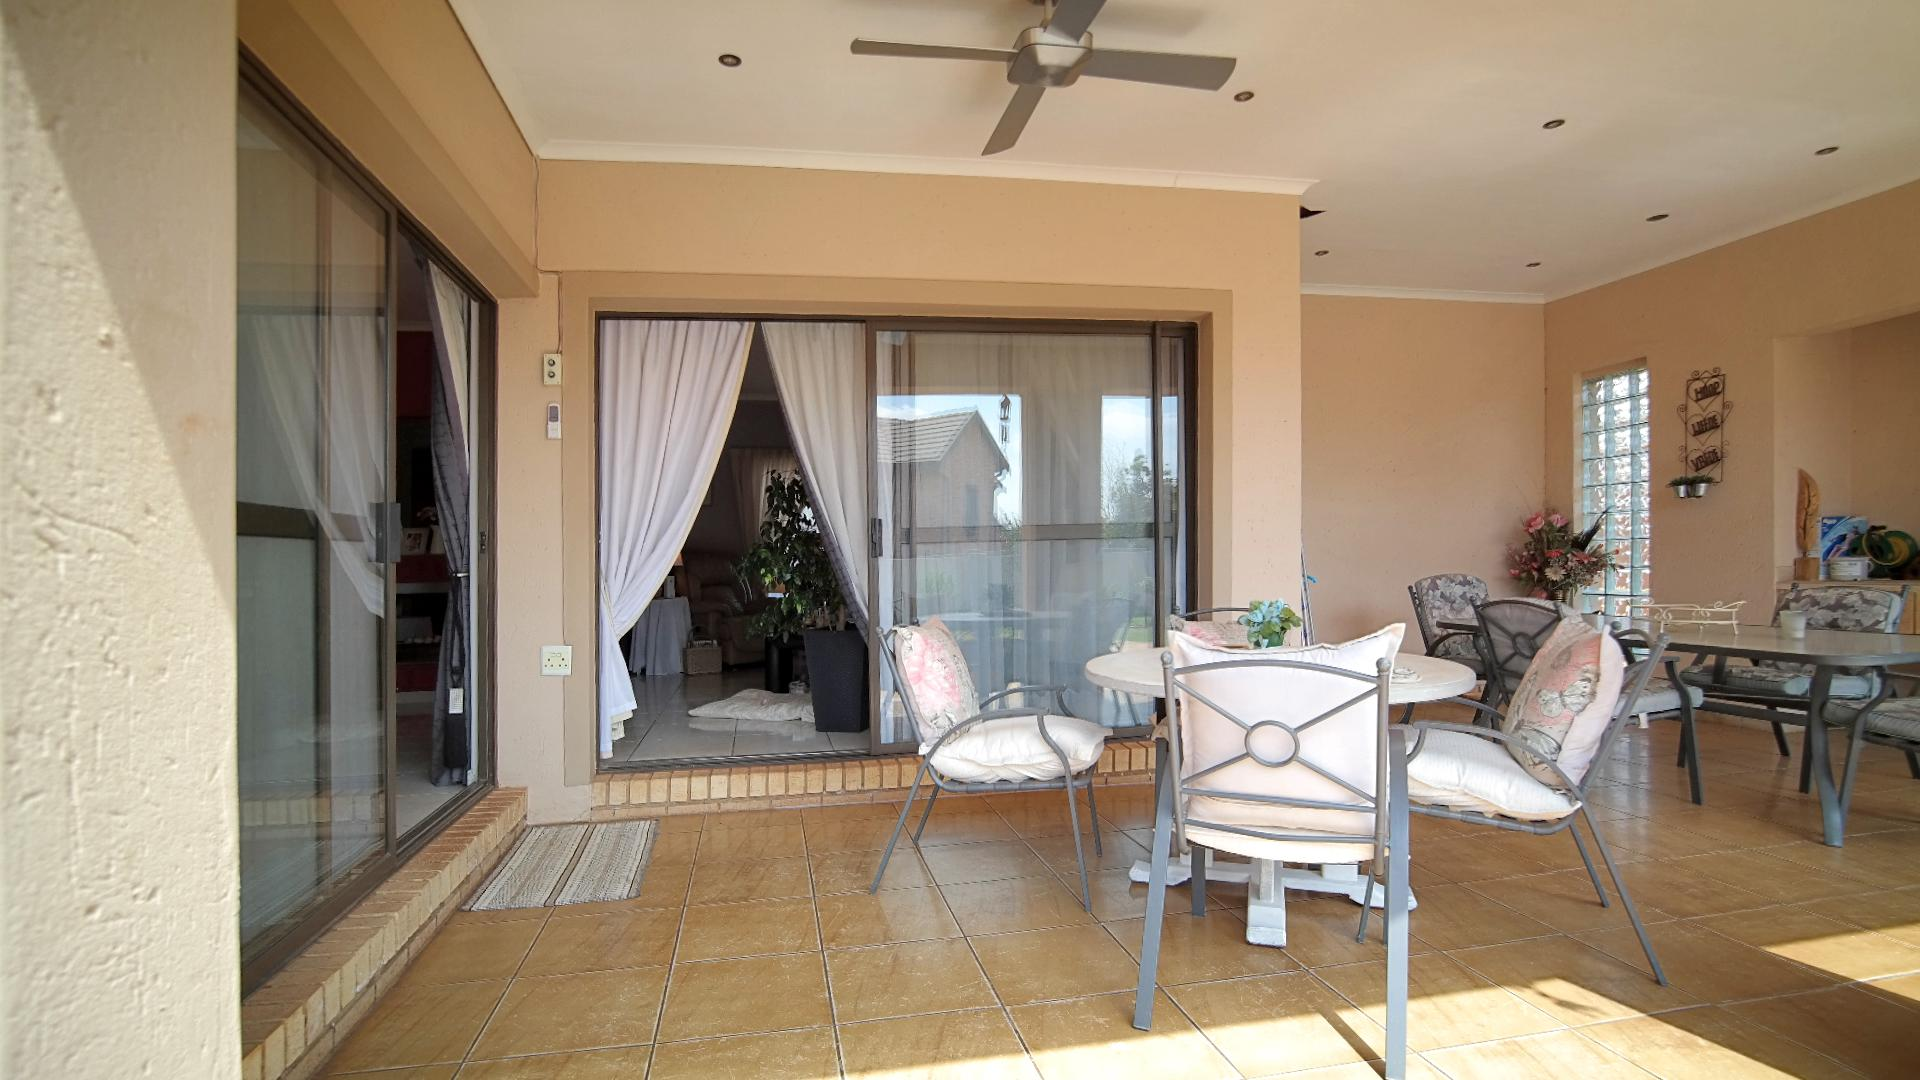 3 Bedroom House for sale in Montana ENT0066308 : photo#7